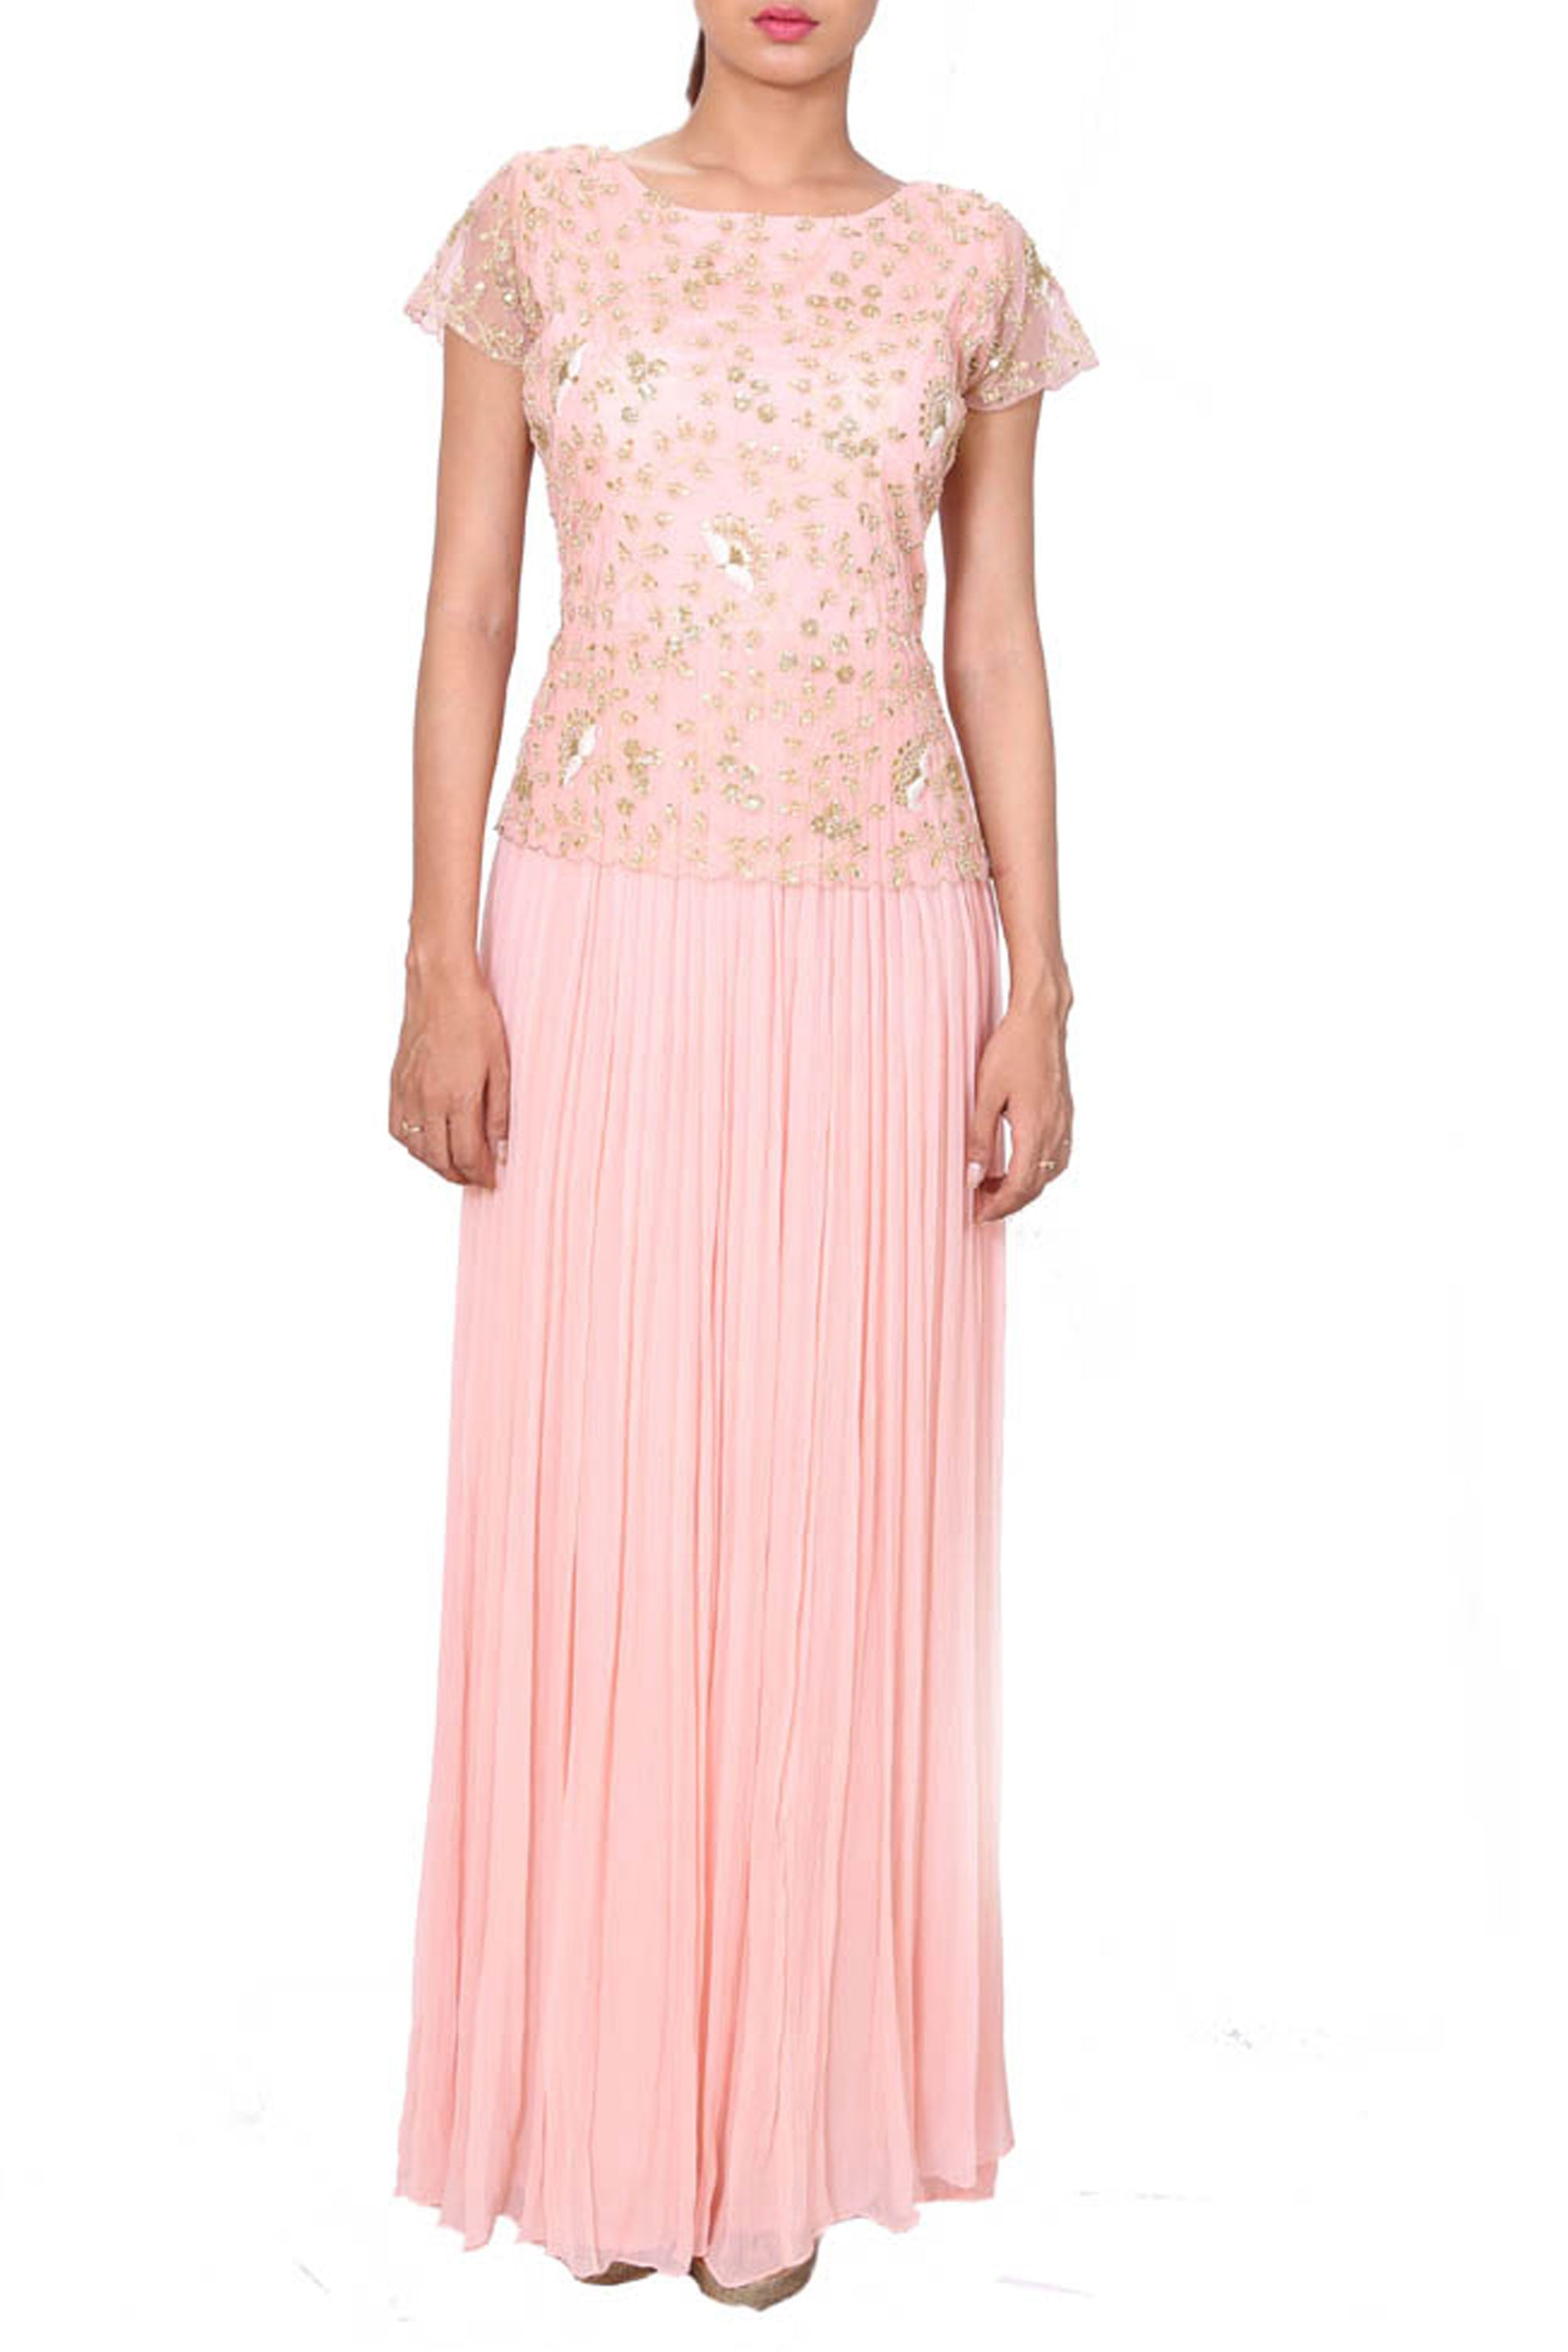 Misty Rose Evening Gown With Embroidered Yoke Front